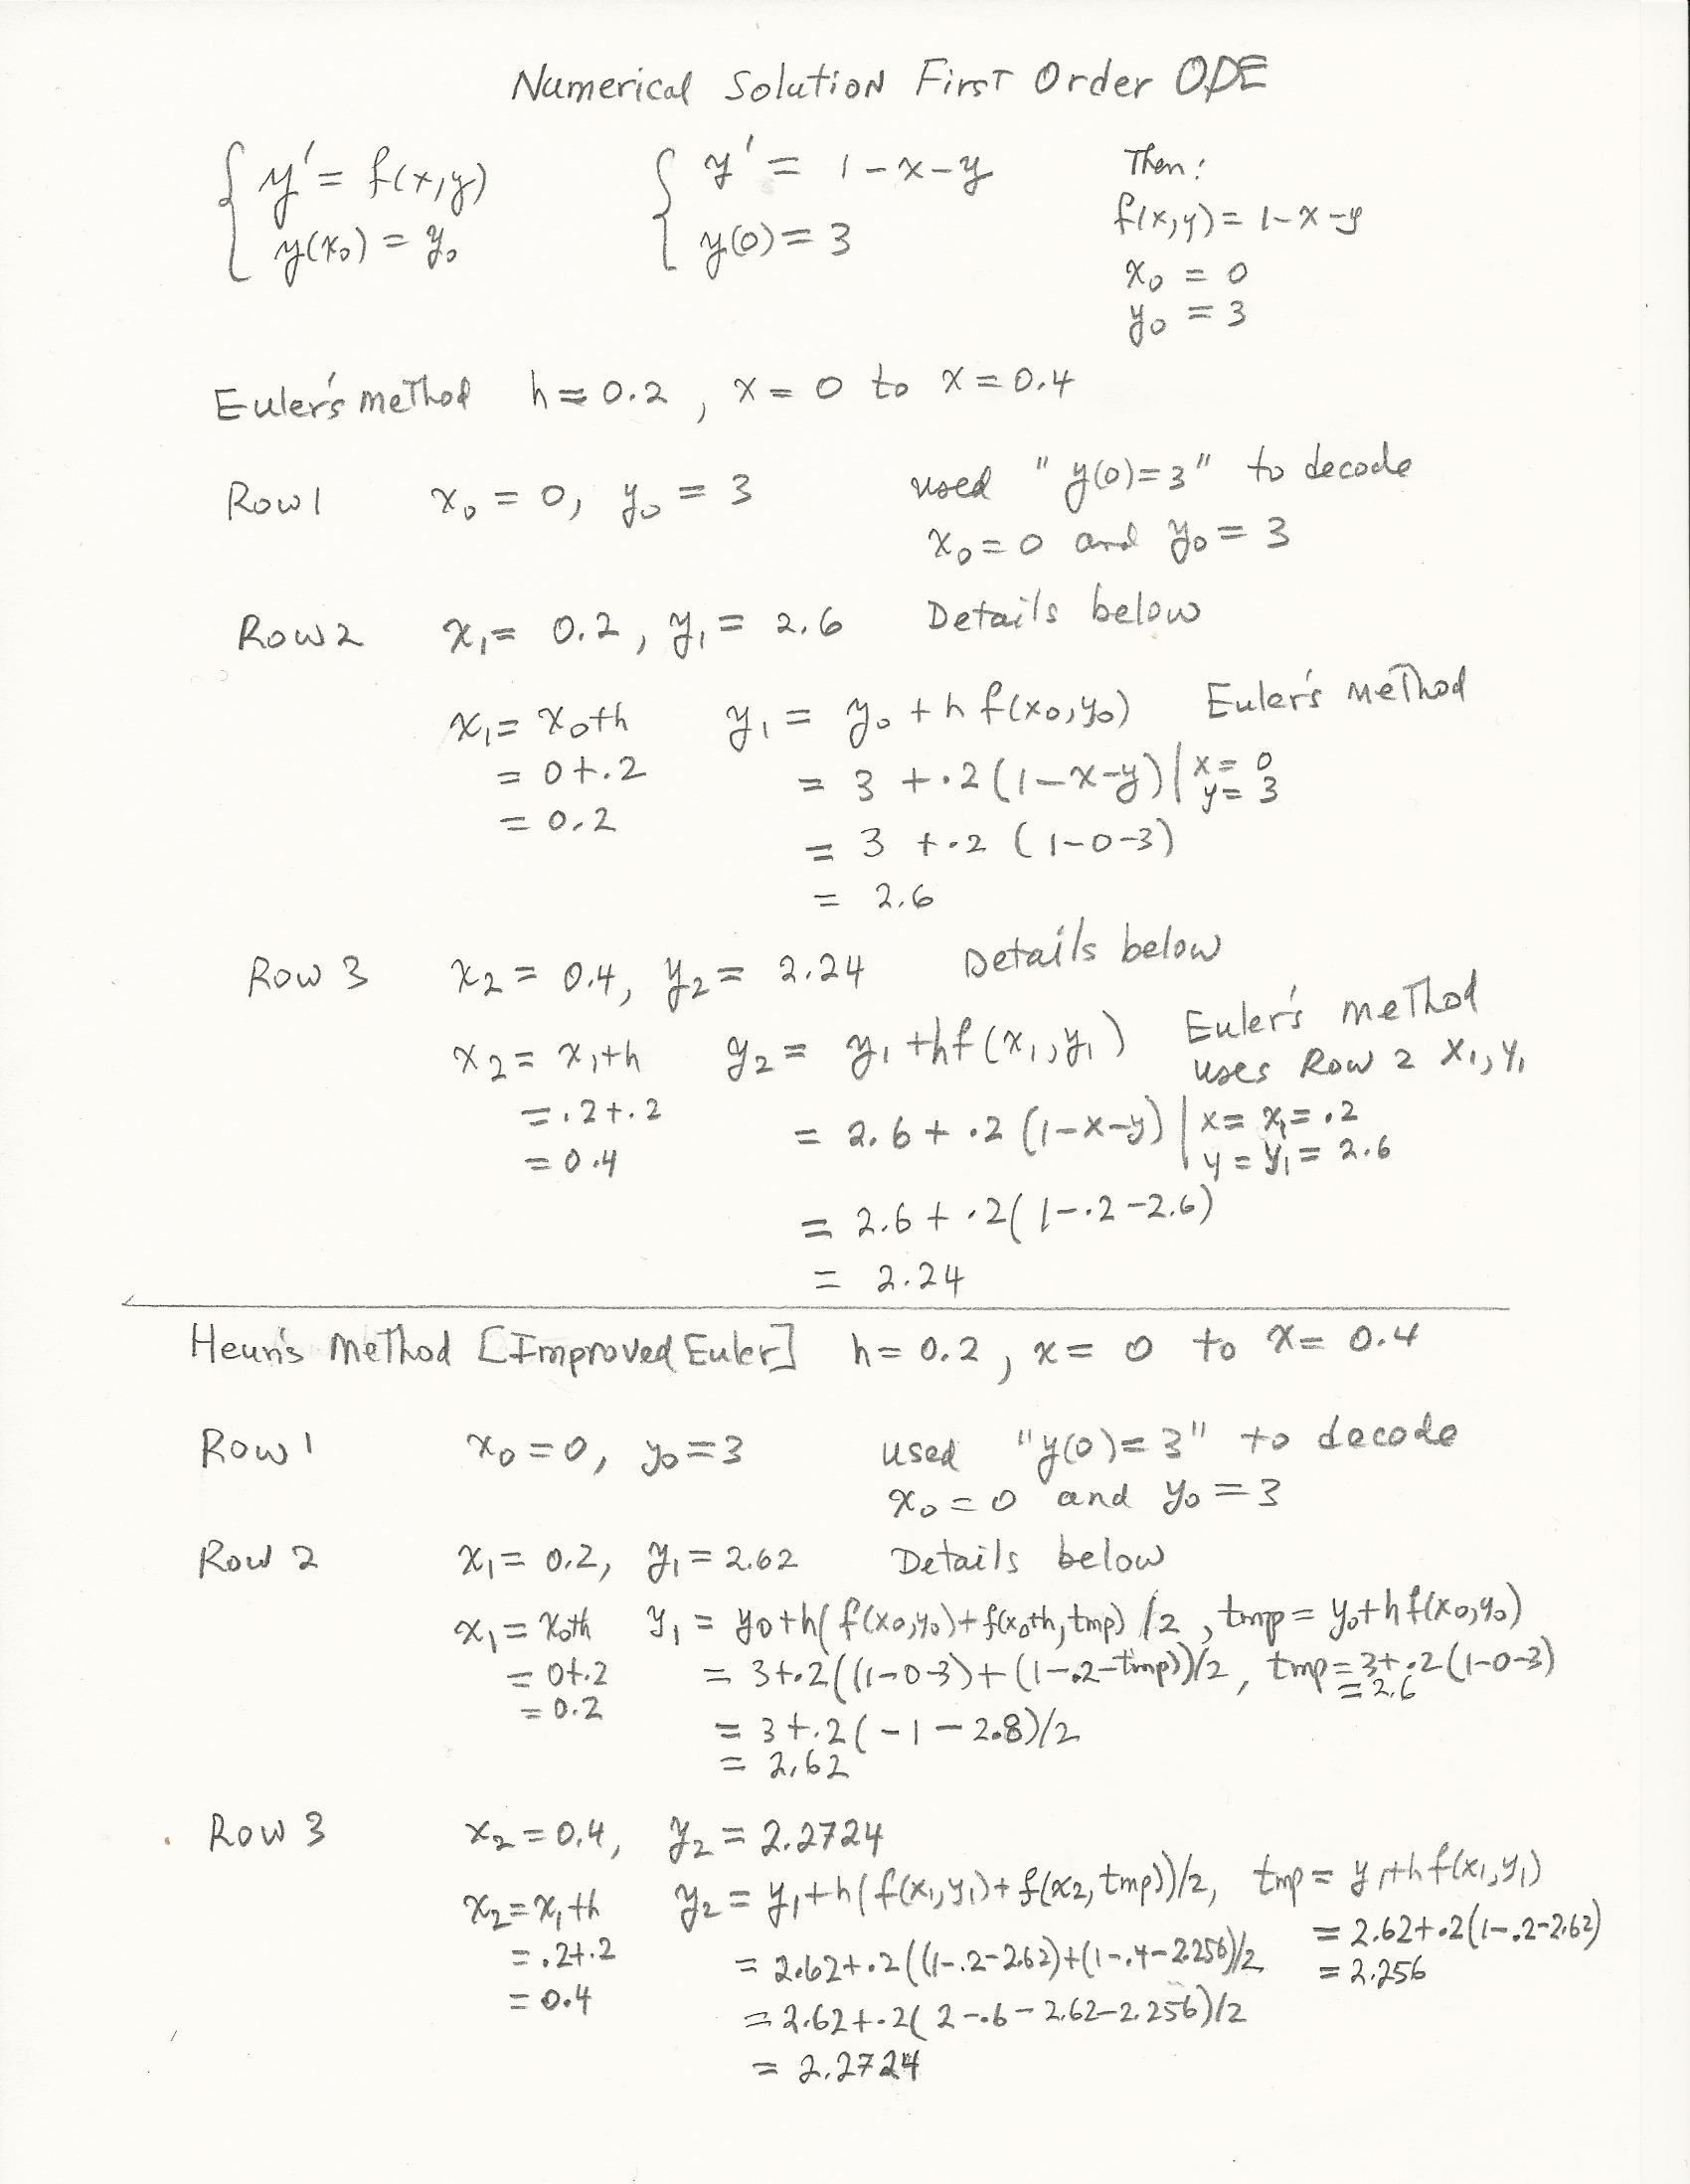 2280 805am Week 4 Lectures S2015 Solve This Second Order Differential Equation For A Rlc Series Circuit Jpeg Handwritten Example Y1 X Y Y03 Euler And Heun 4278 K